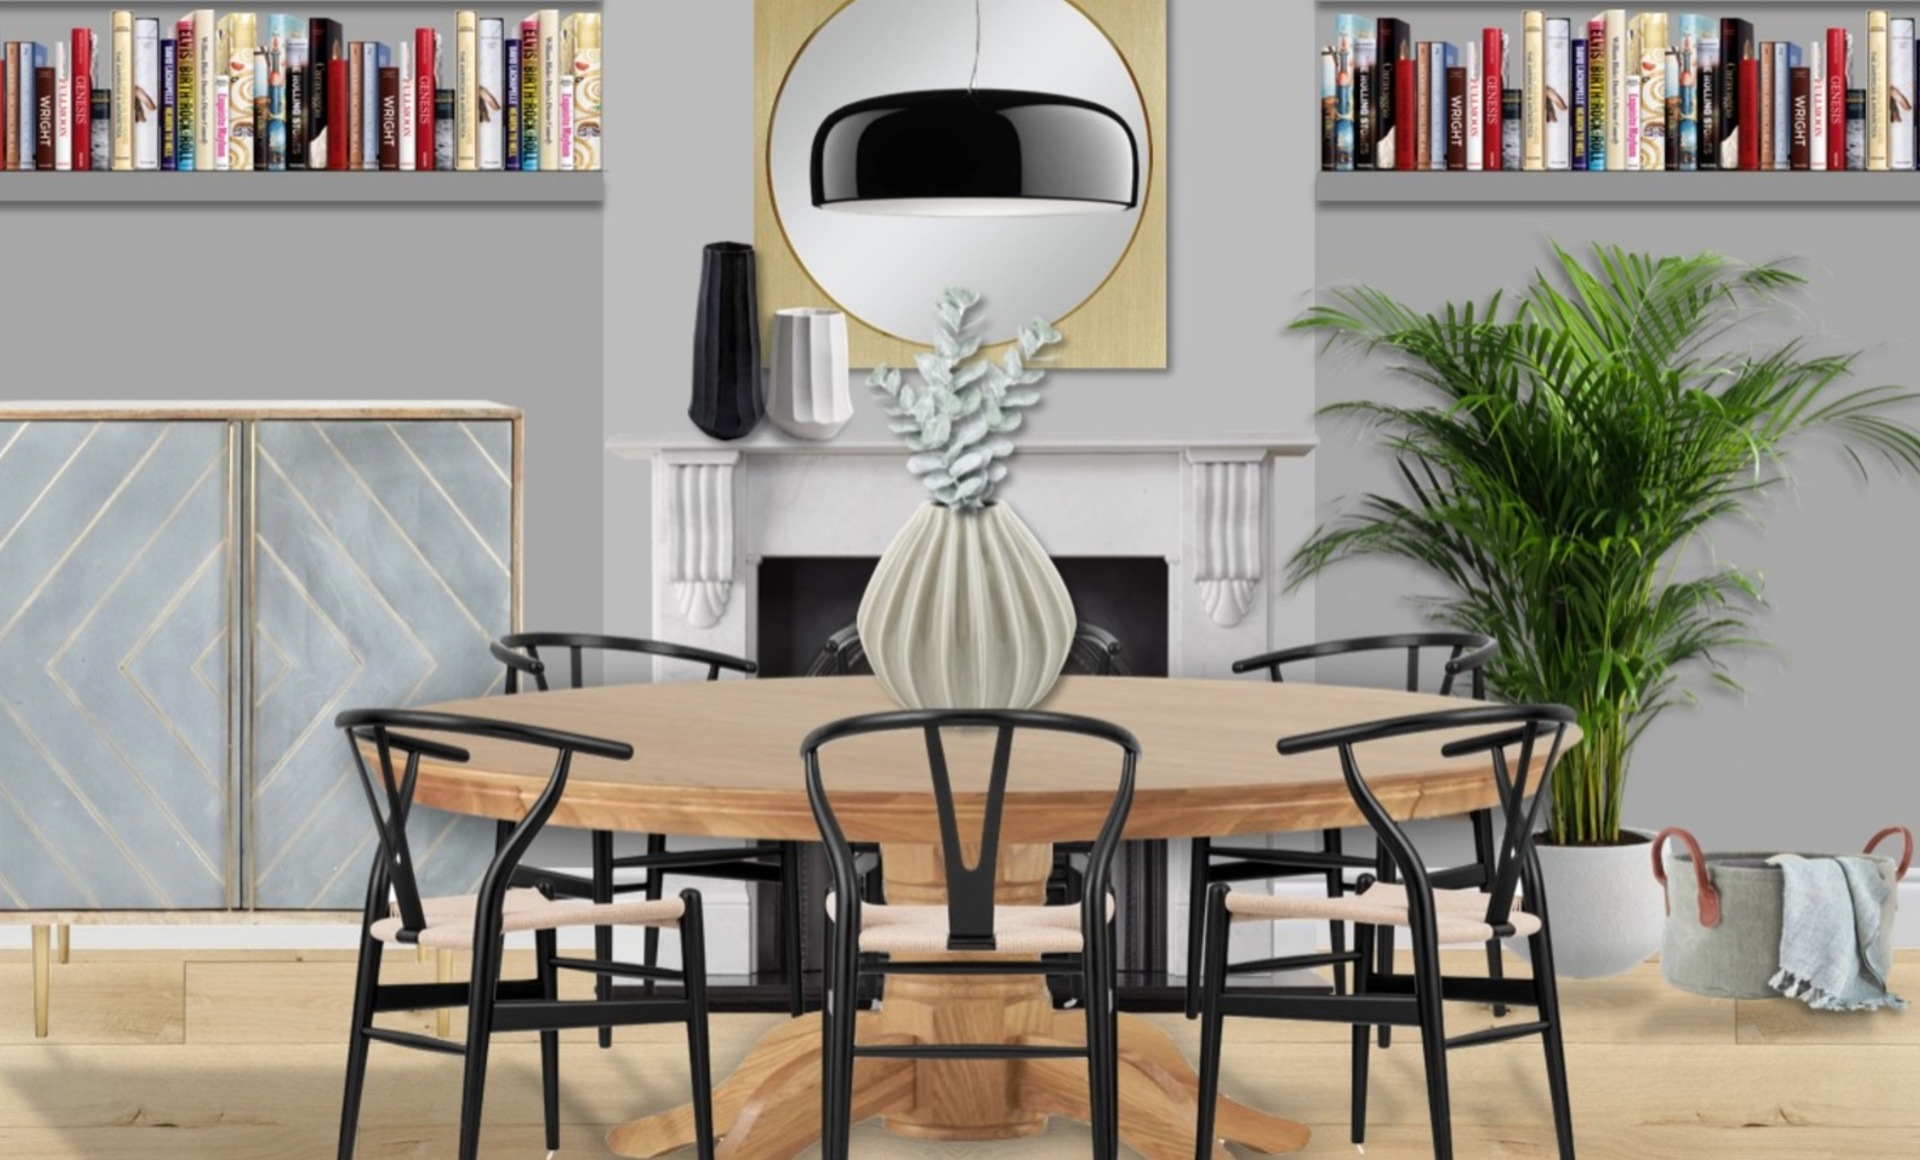 Circular dining table with wishbone chairs, indoor greenery and geometric bar cabinet to ensure on-trend finish